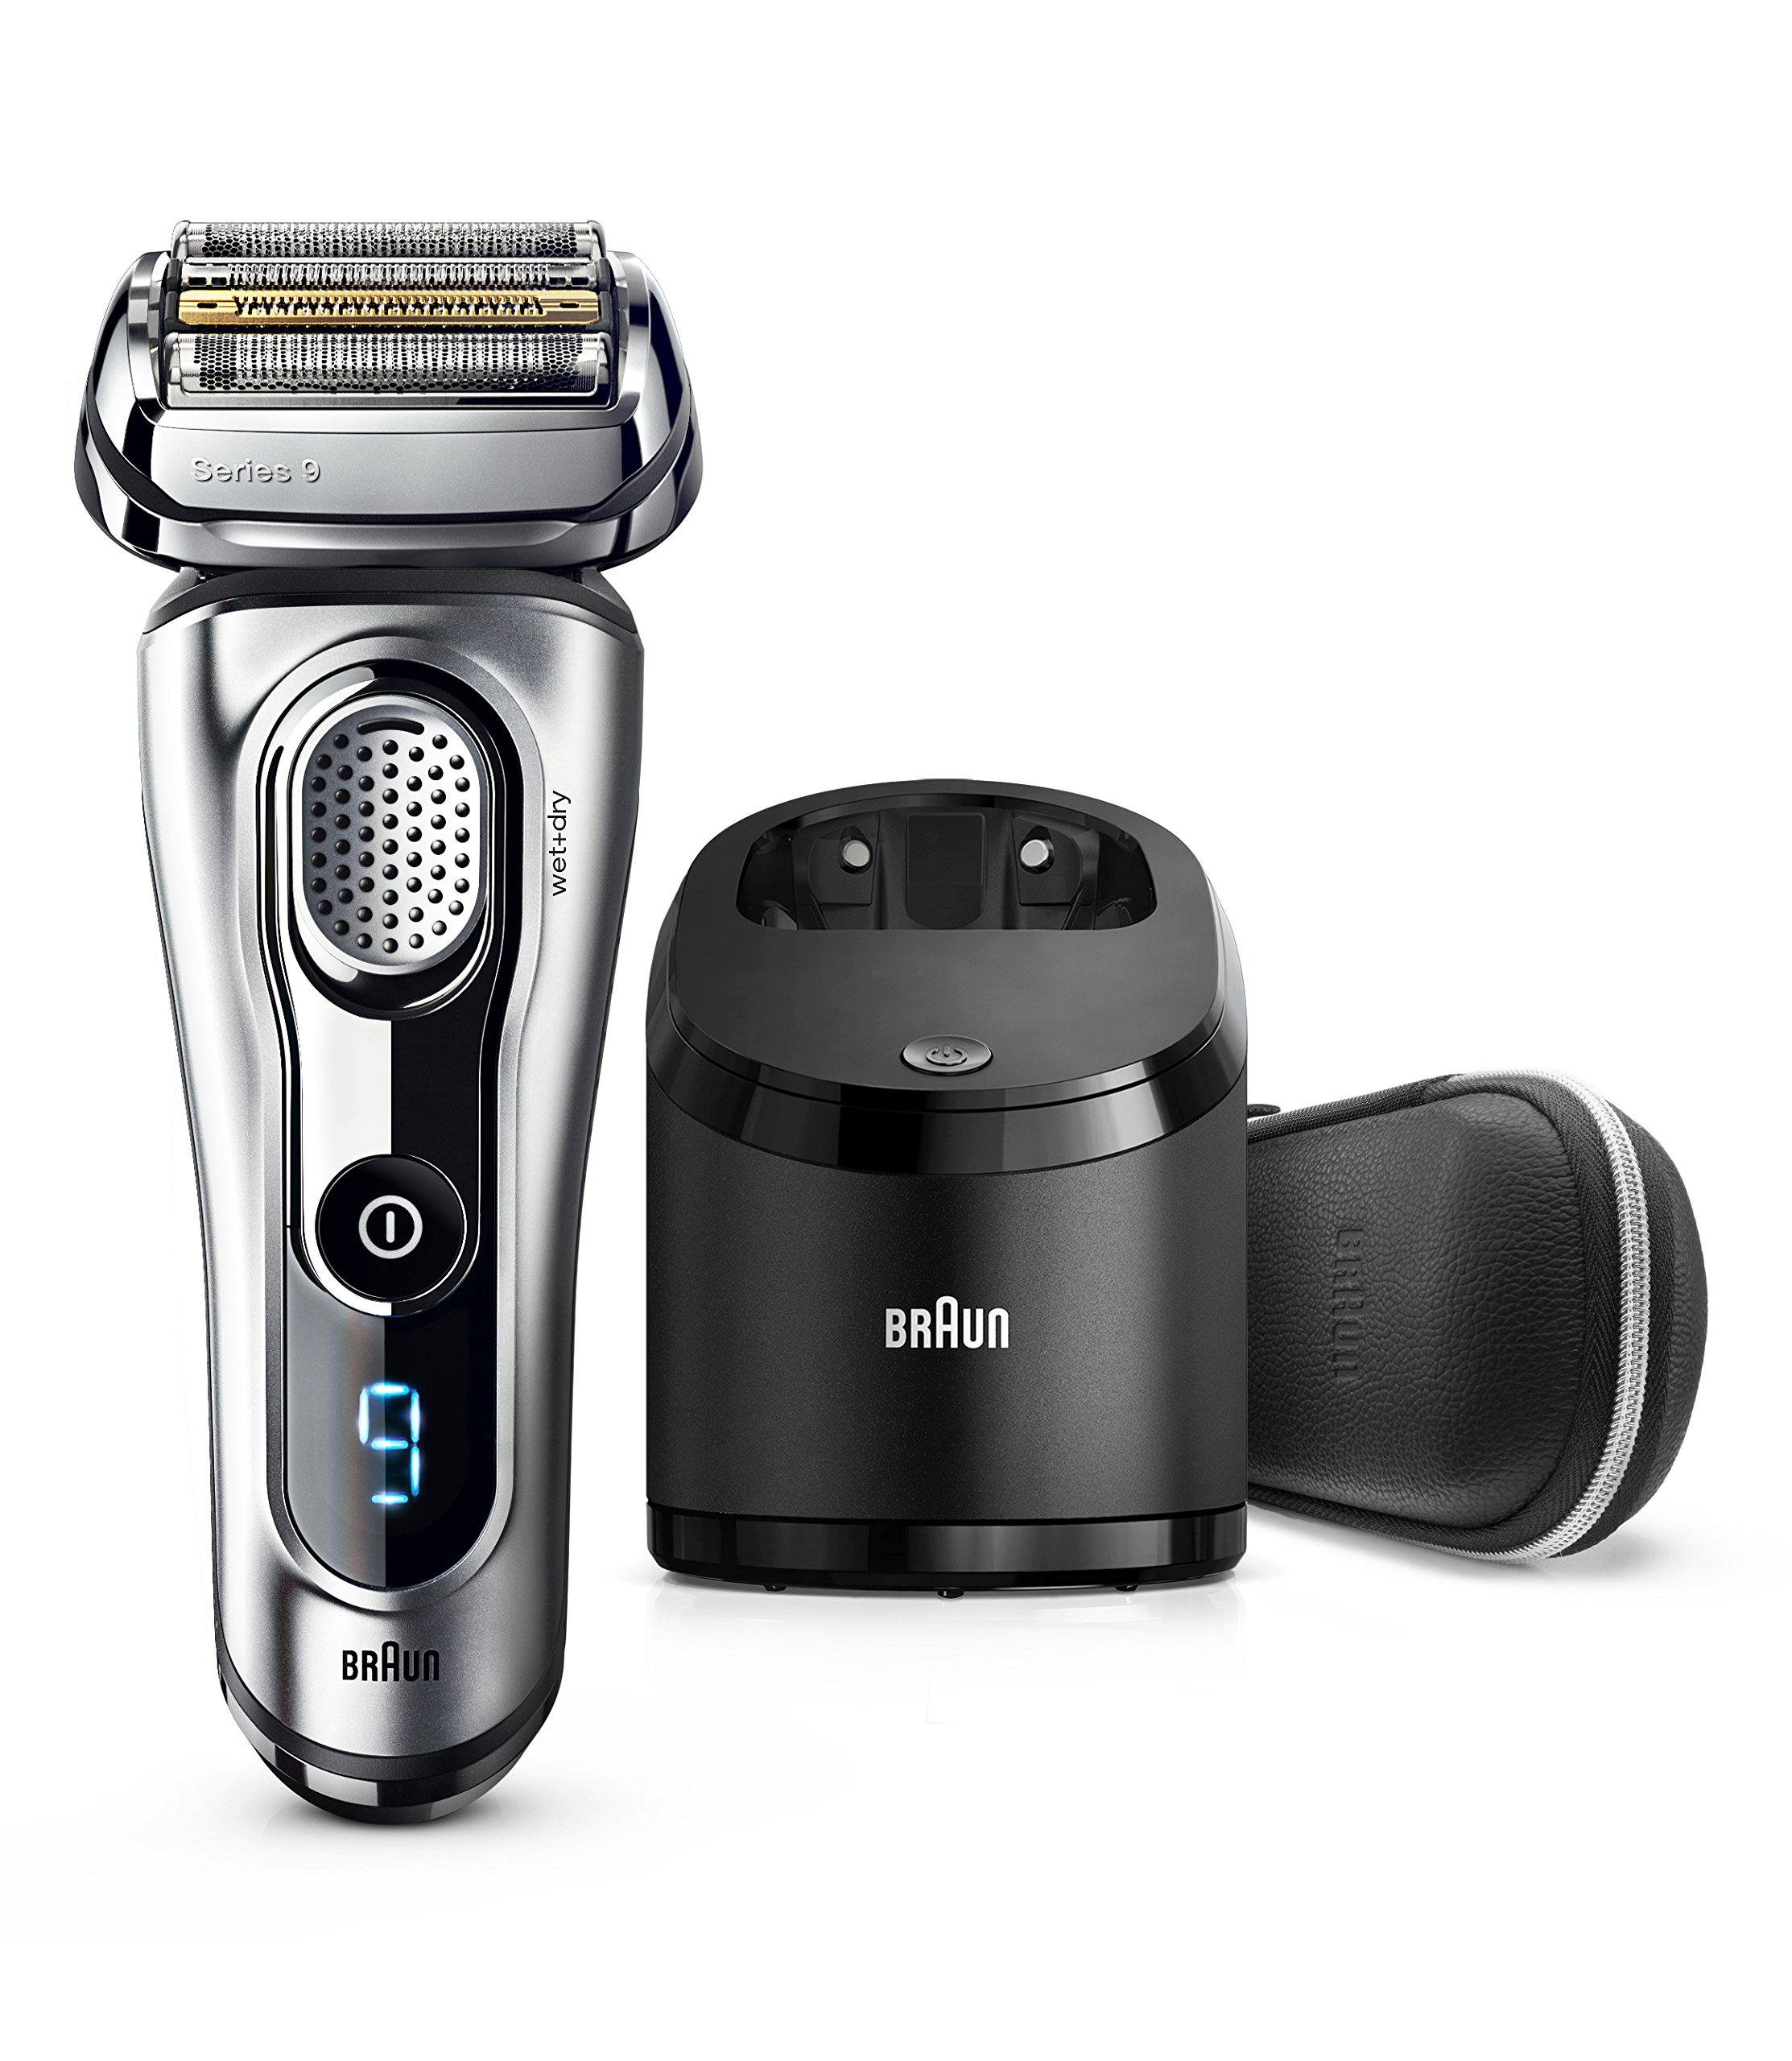 braun series 9 9290cc electric razor for men - 81CmsUO2IzL - Braun Electric Razor for Men, Series 9 9290cc Electric Shaver With Precision Trimmer, Rechargeable, Wet & Dry Foil Shaver, Clean & Charge Station & Travel Case